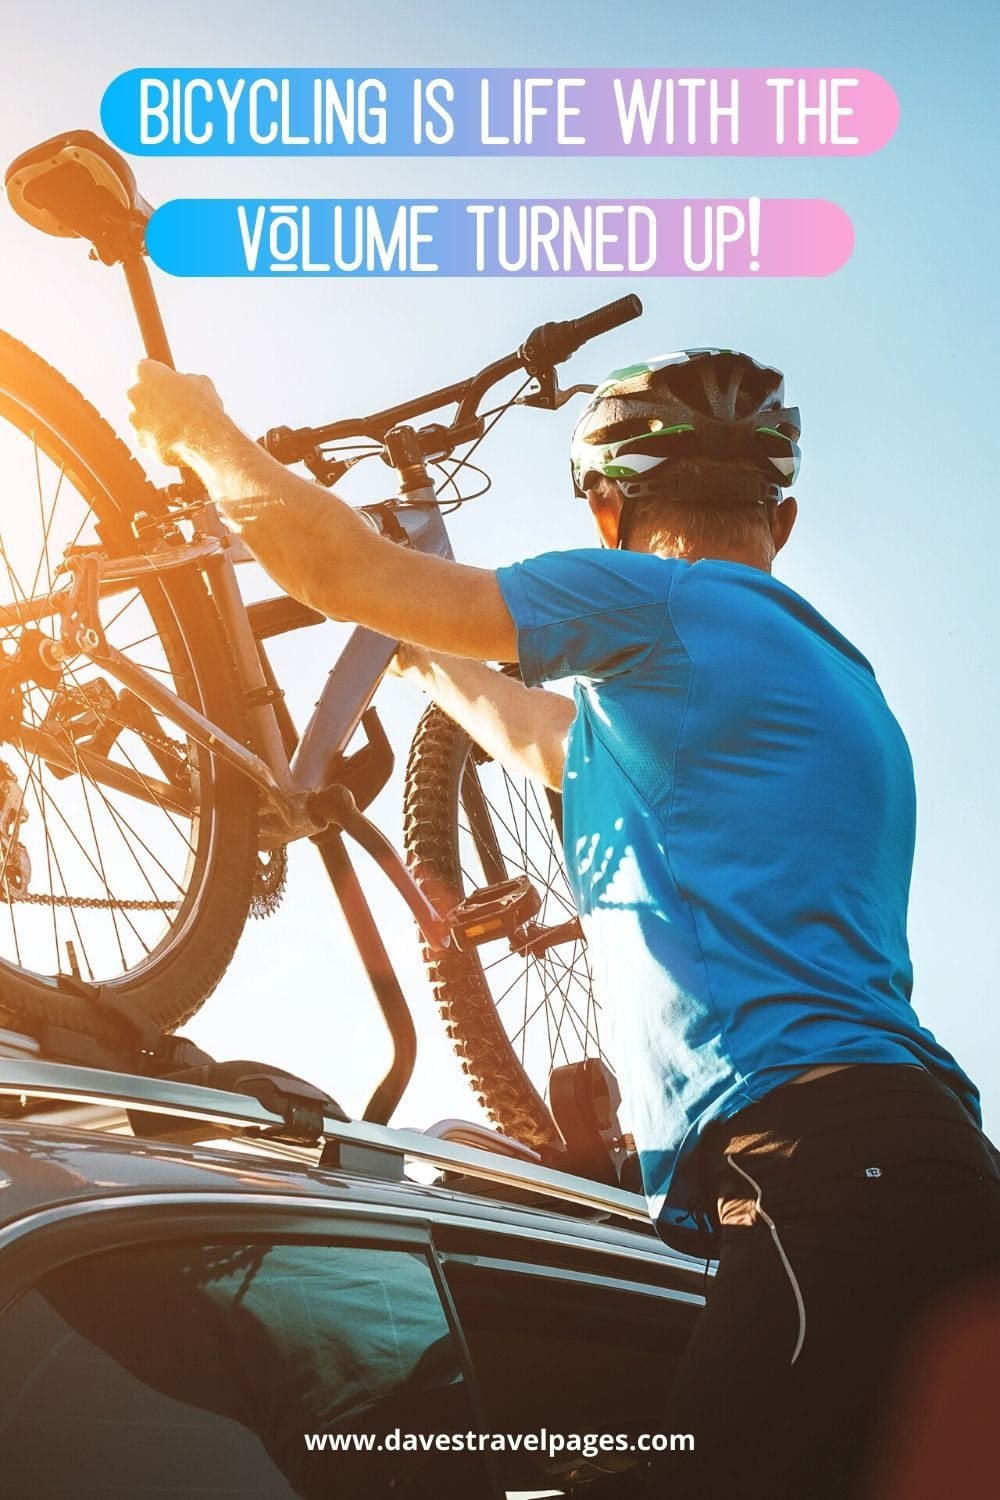 My favourite quote about bicycling - Bicycling is life with the volume turned up!